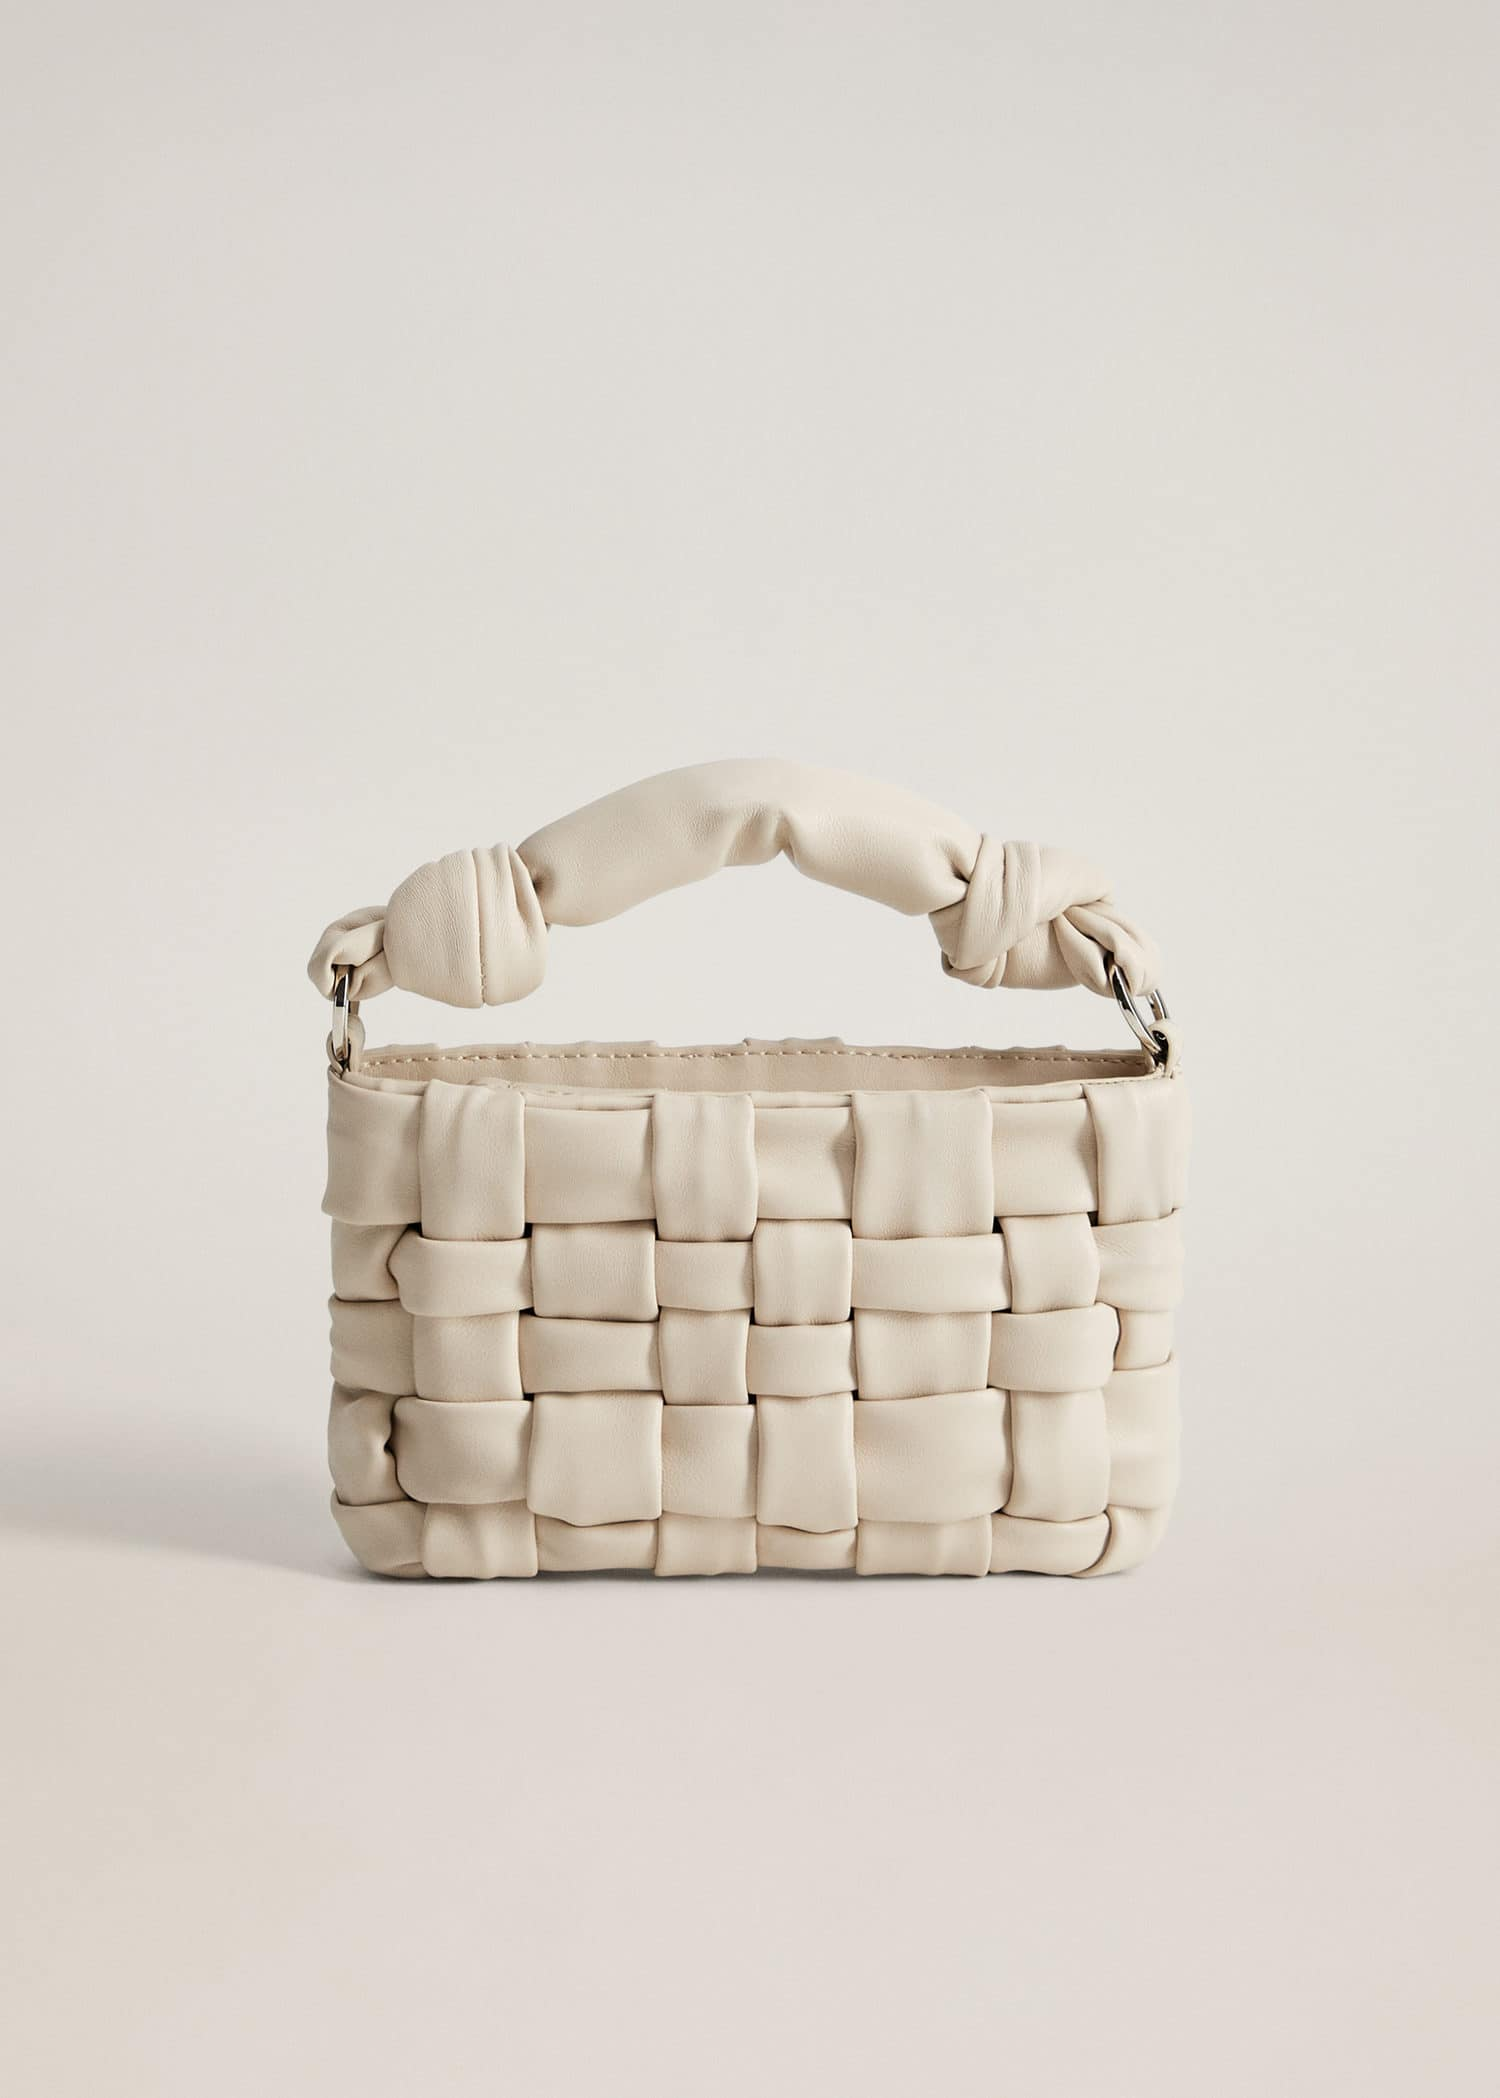 Braided design bag - Article without model